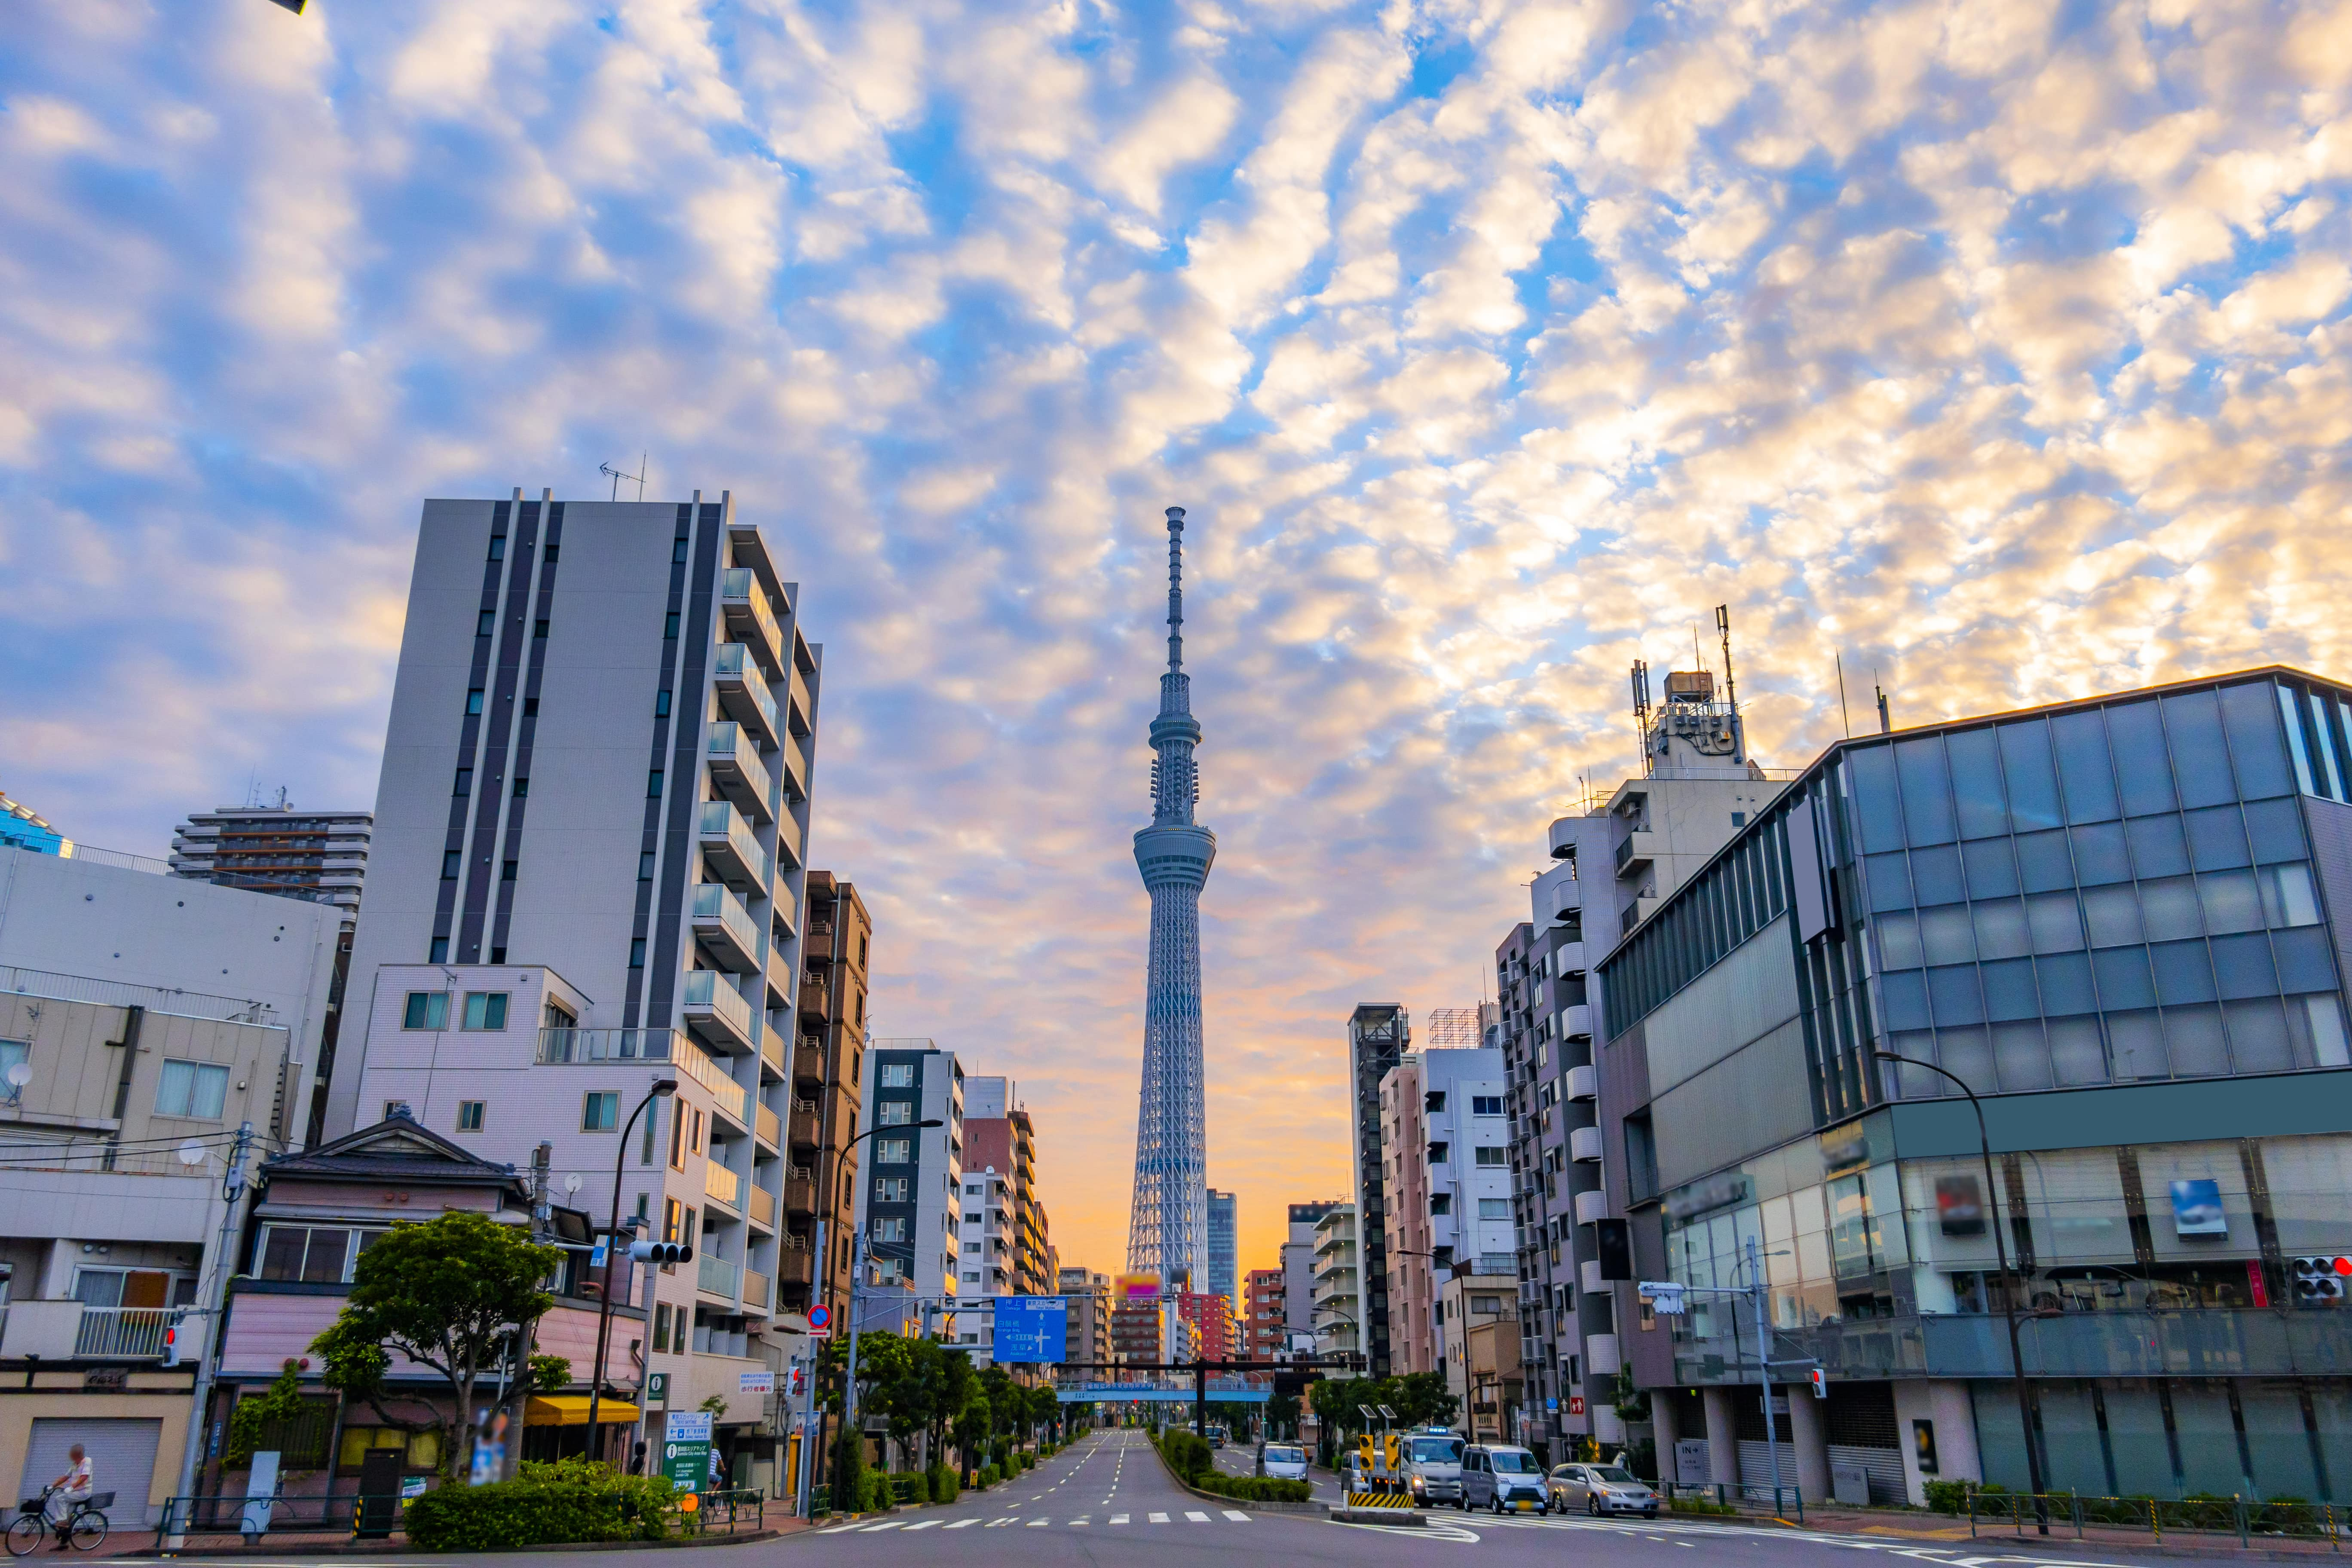 Tokyo Skytree from the front